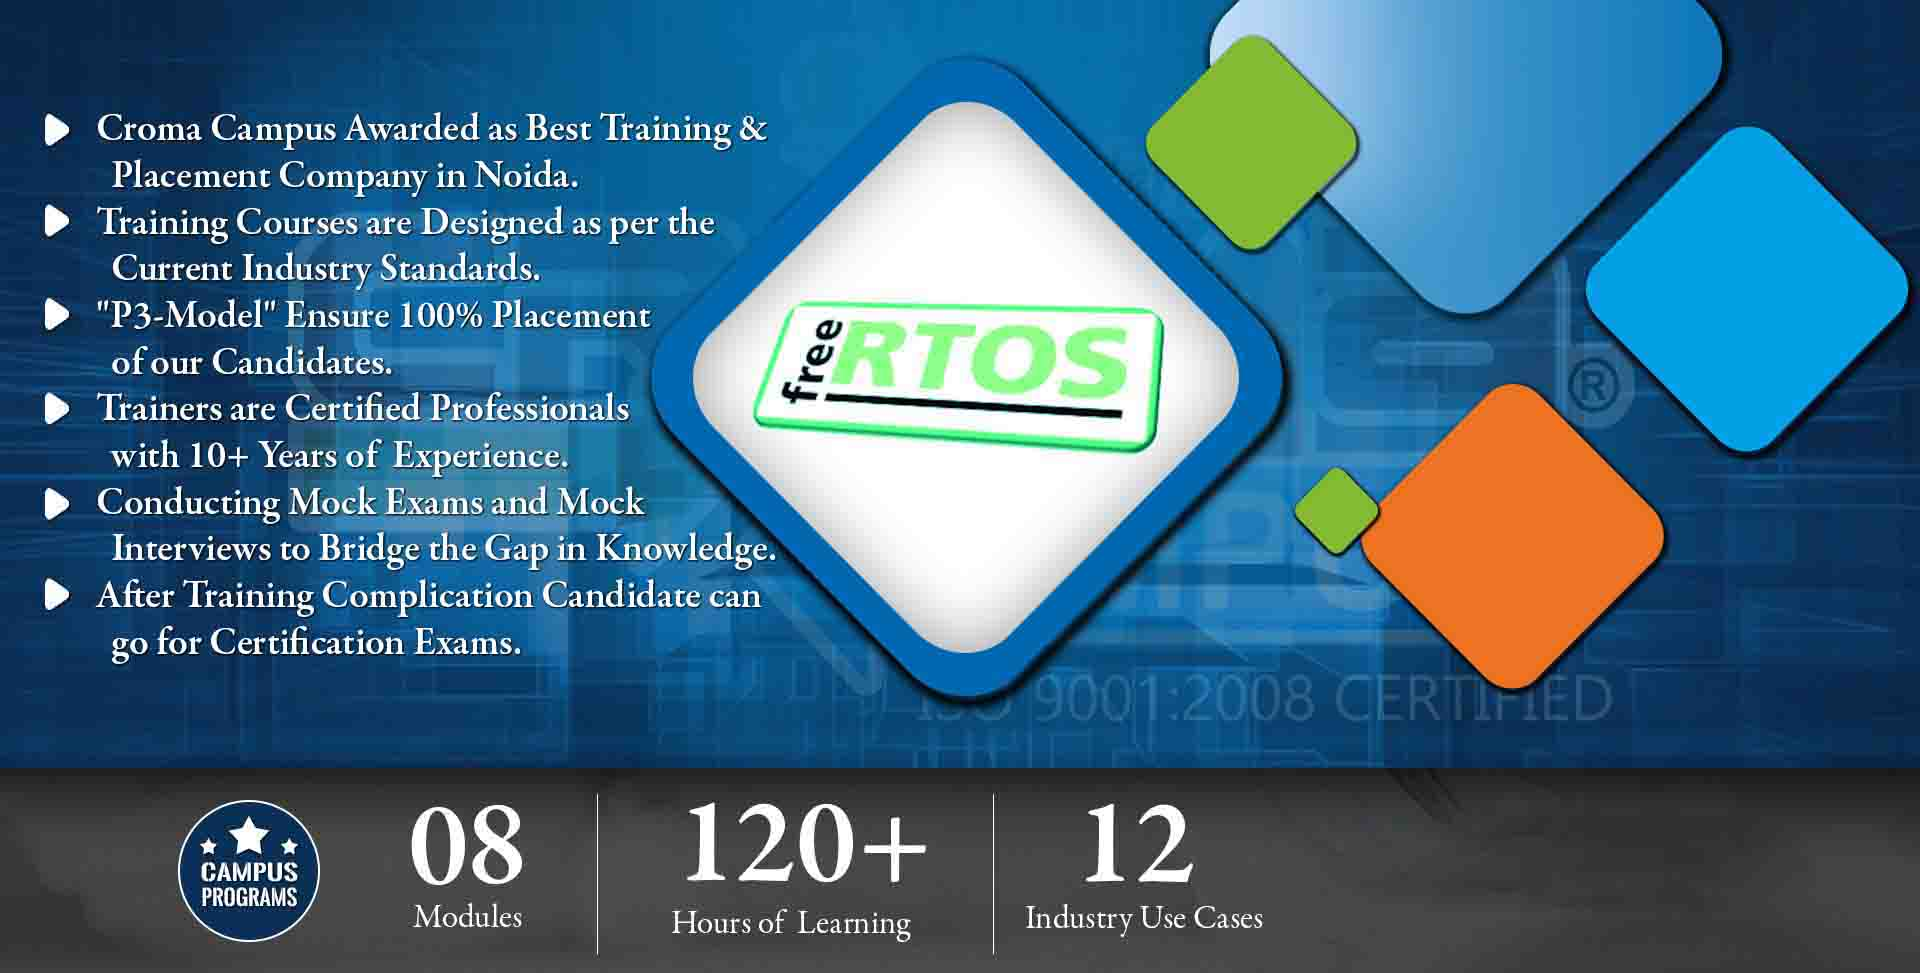 RTOS Training in Noida- Croma Campus